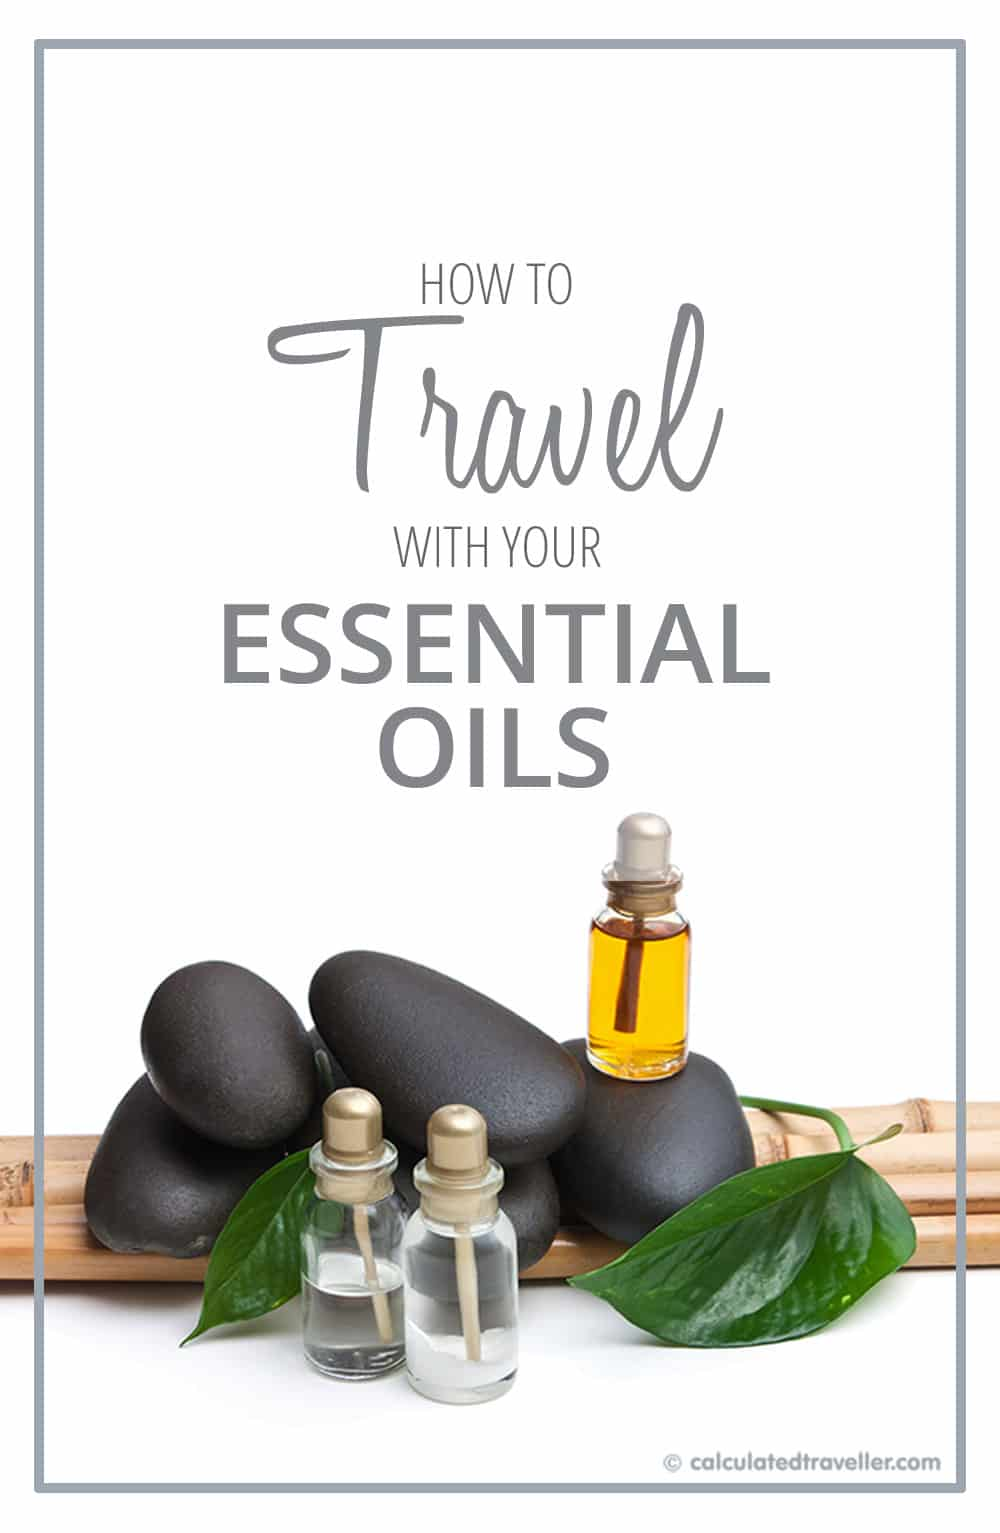 Do you practice aromatherapy at home? Here are tips for traveling with your favourite blend of essential oils to help you feel great wherever you travel.  #travel #EssentialOils #Oils #EOs #packing #advice #HowTo